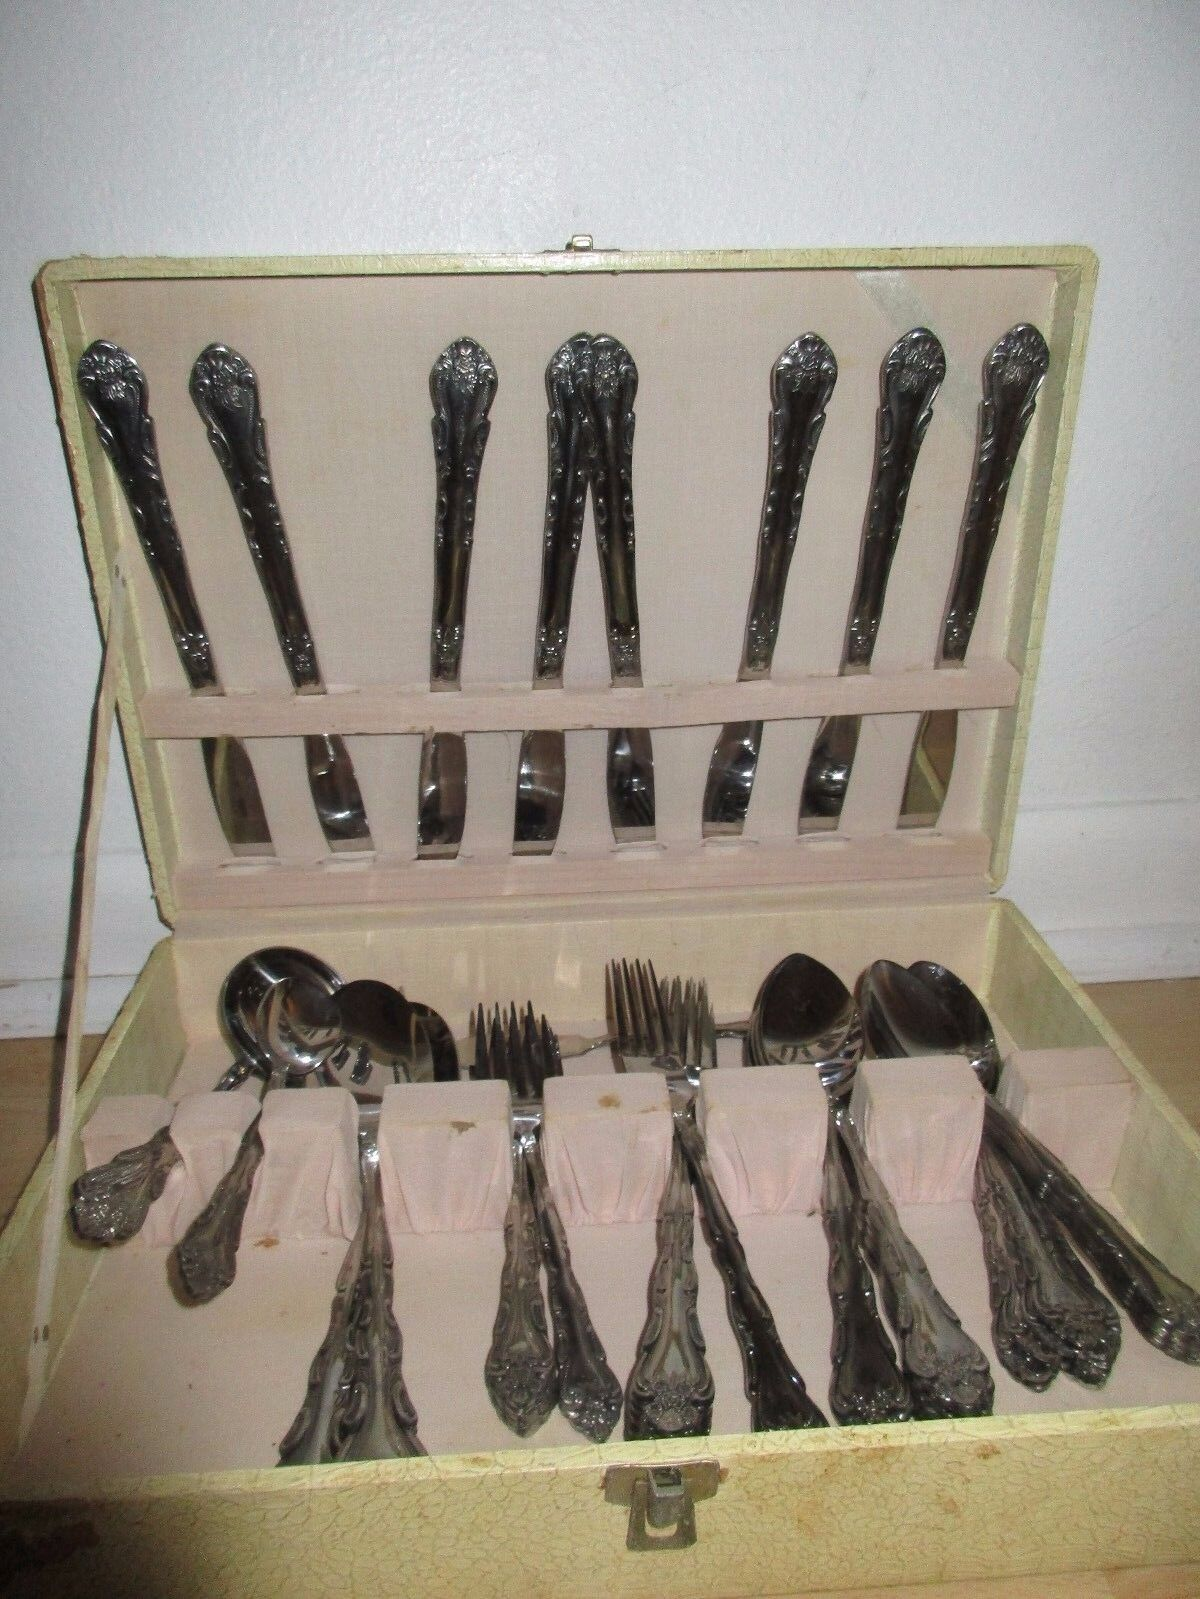 VINTAGE FLATWARE CASE AND 52 PIECE FLATWARE SET INTERNATIONAL STAINLESS